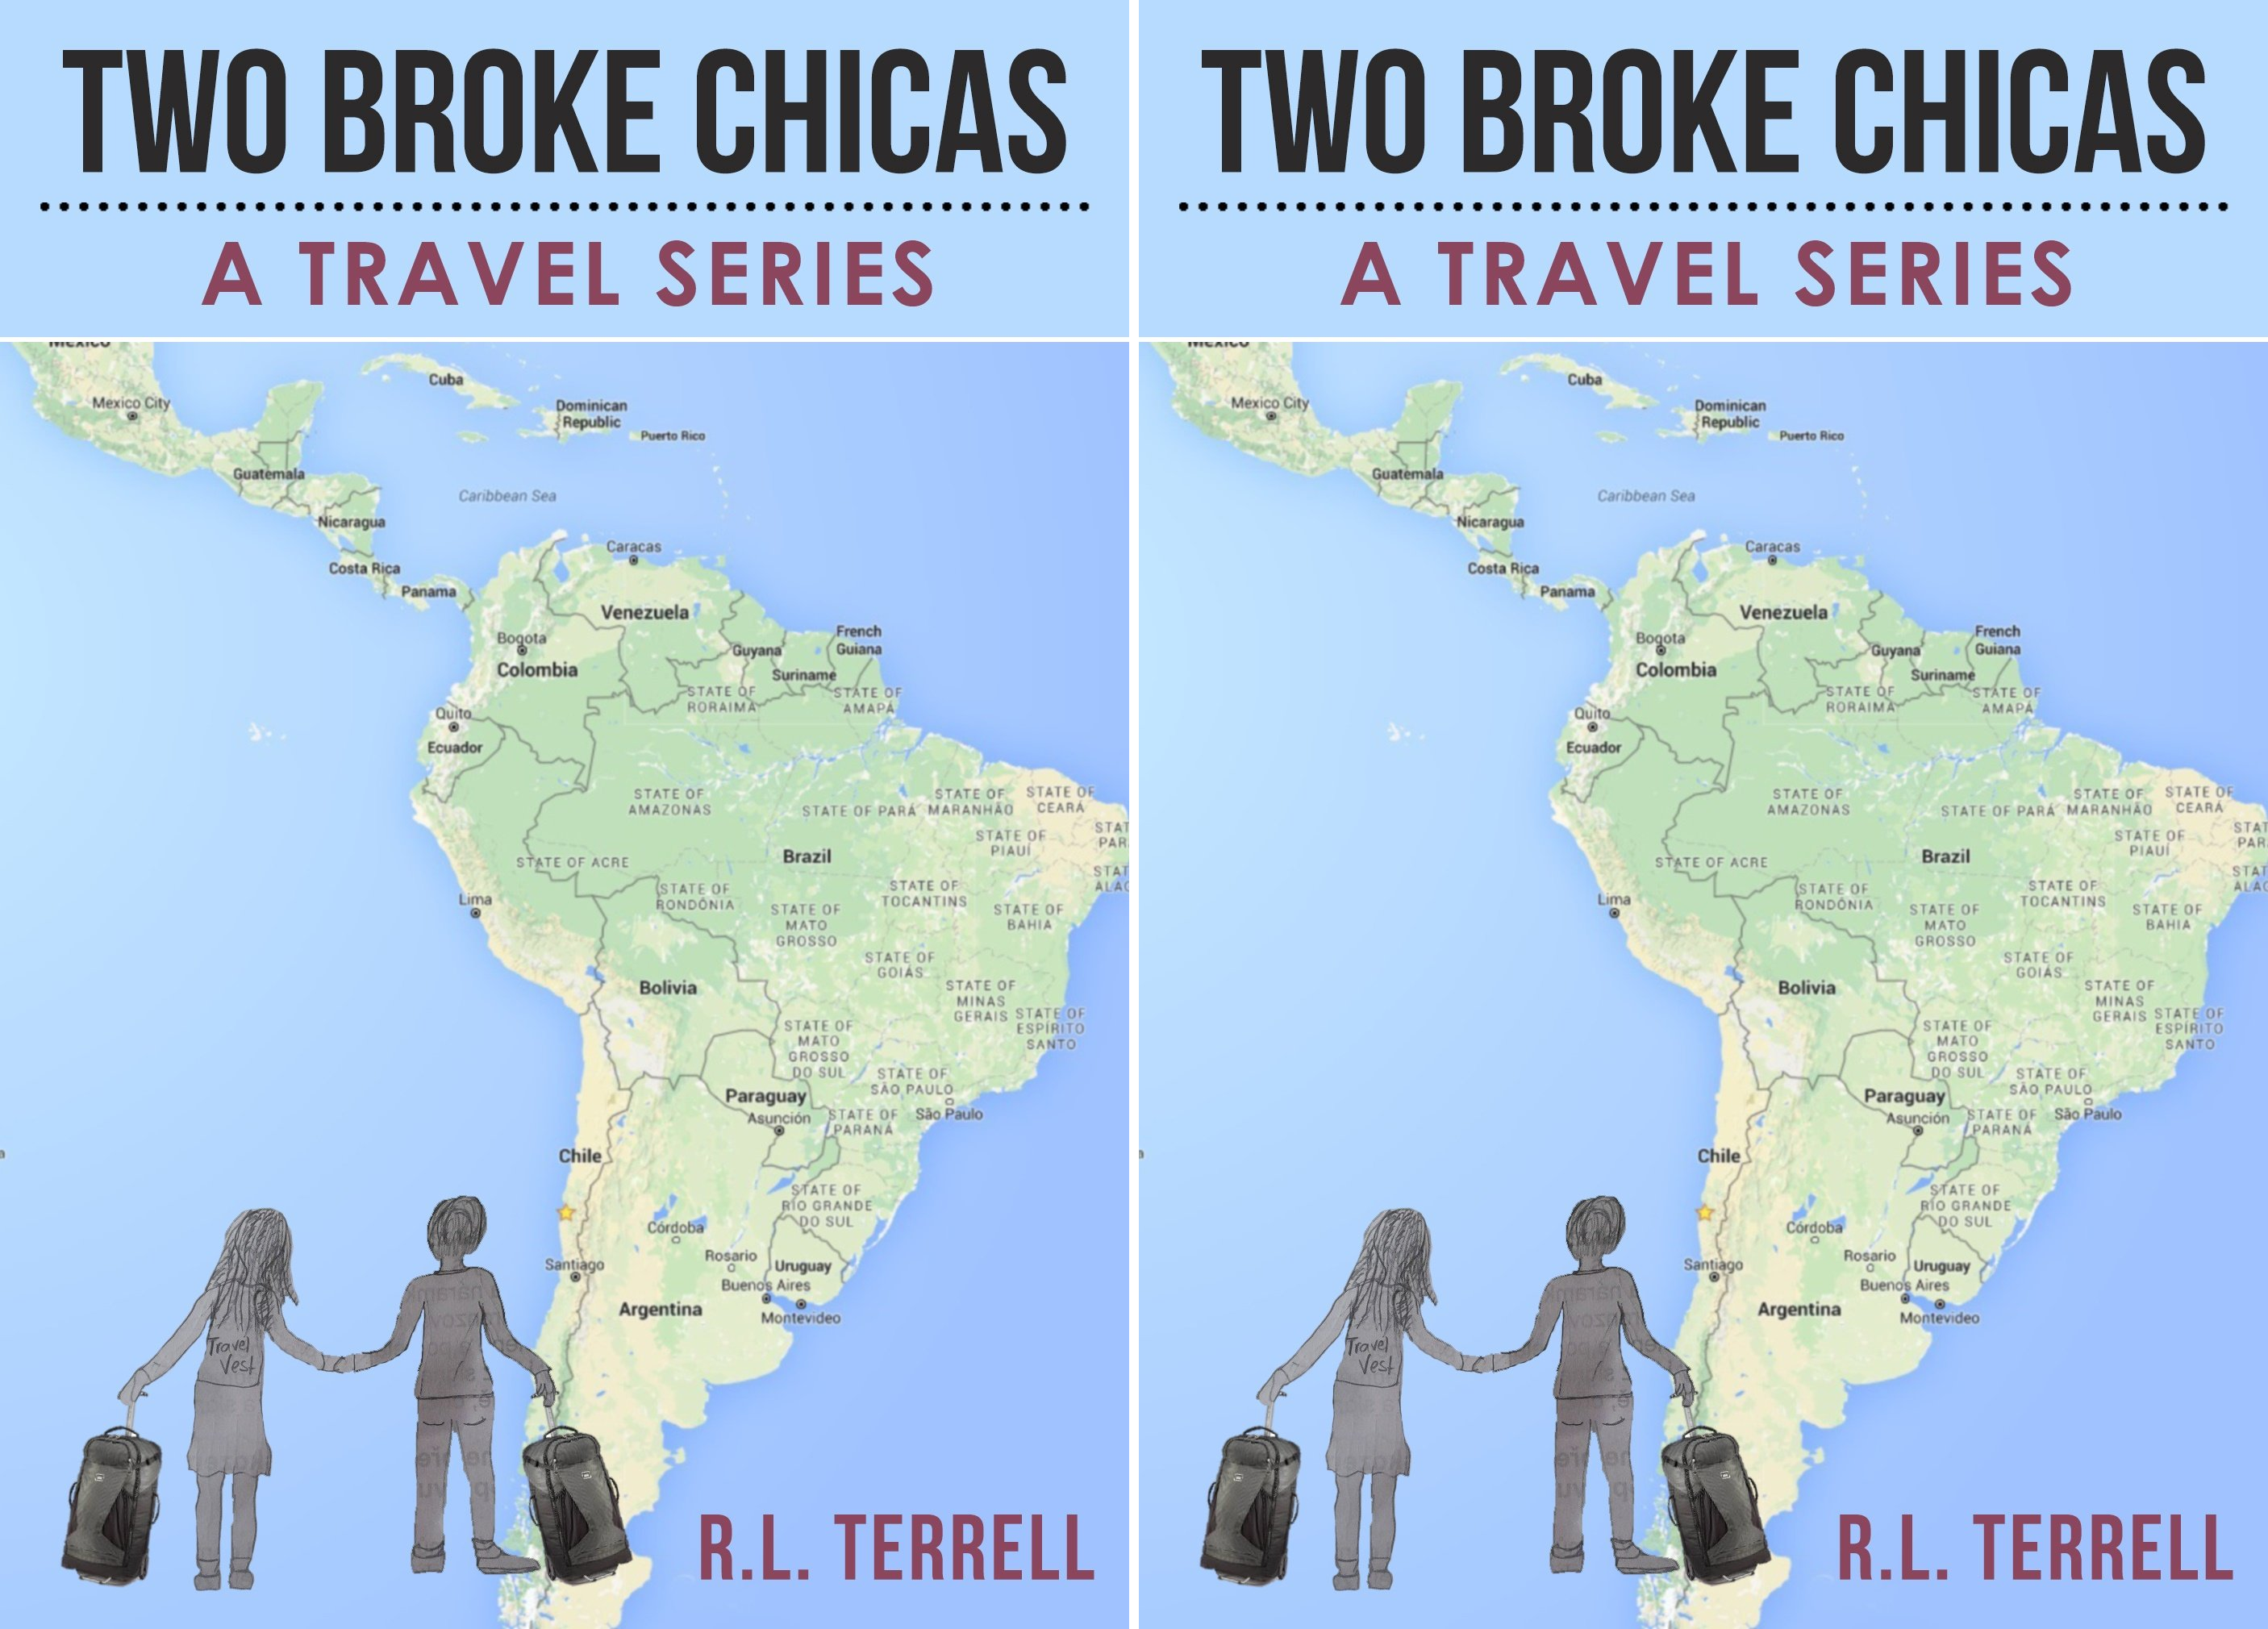 Two Broke Chicas Travel Series (2 Book Series)